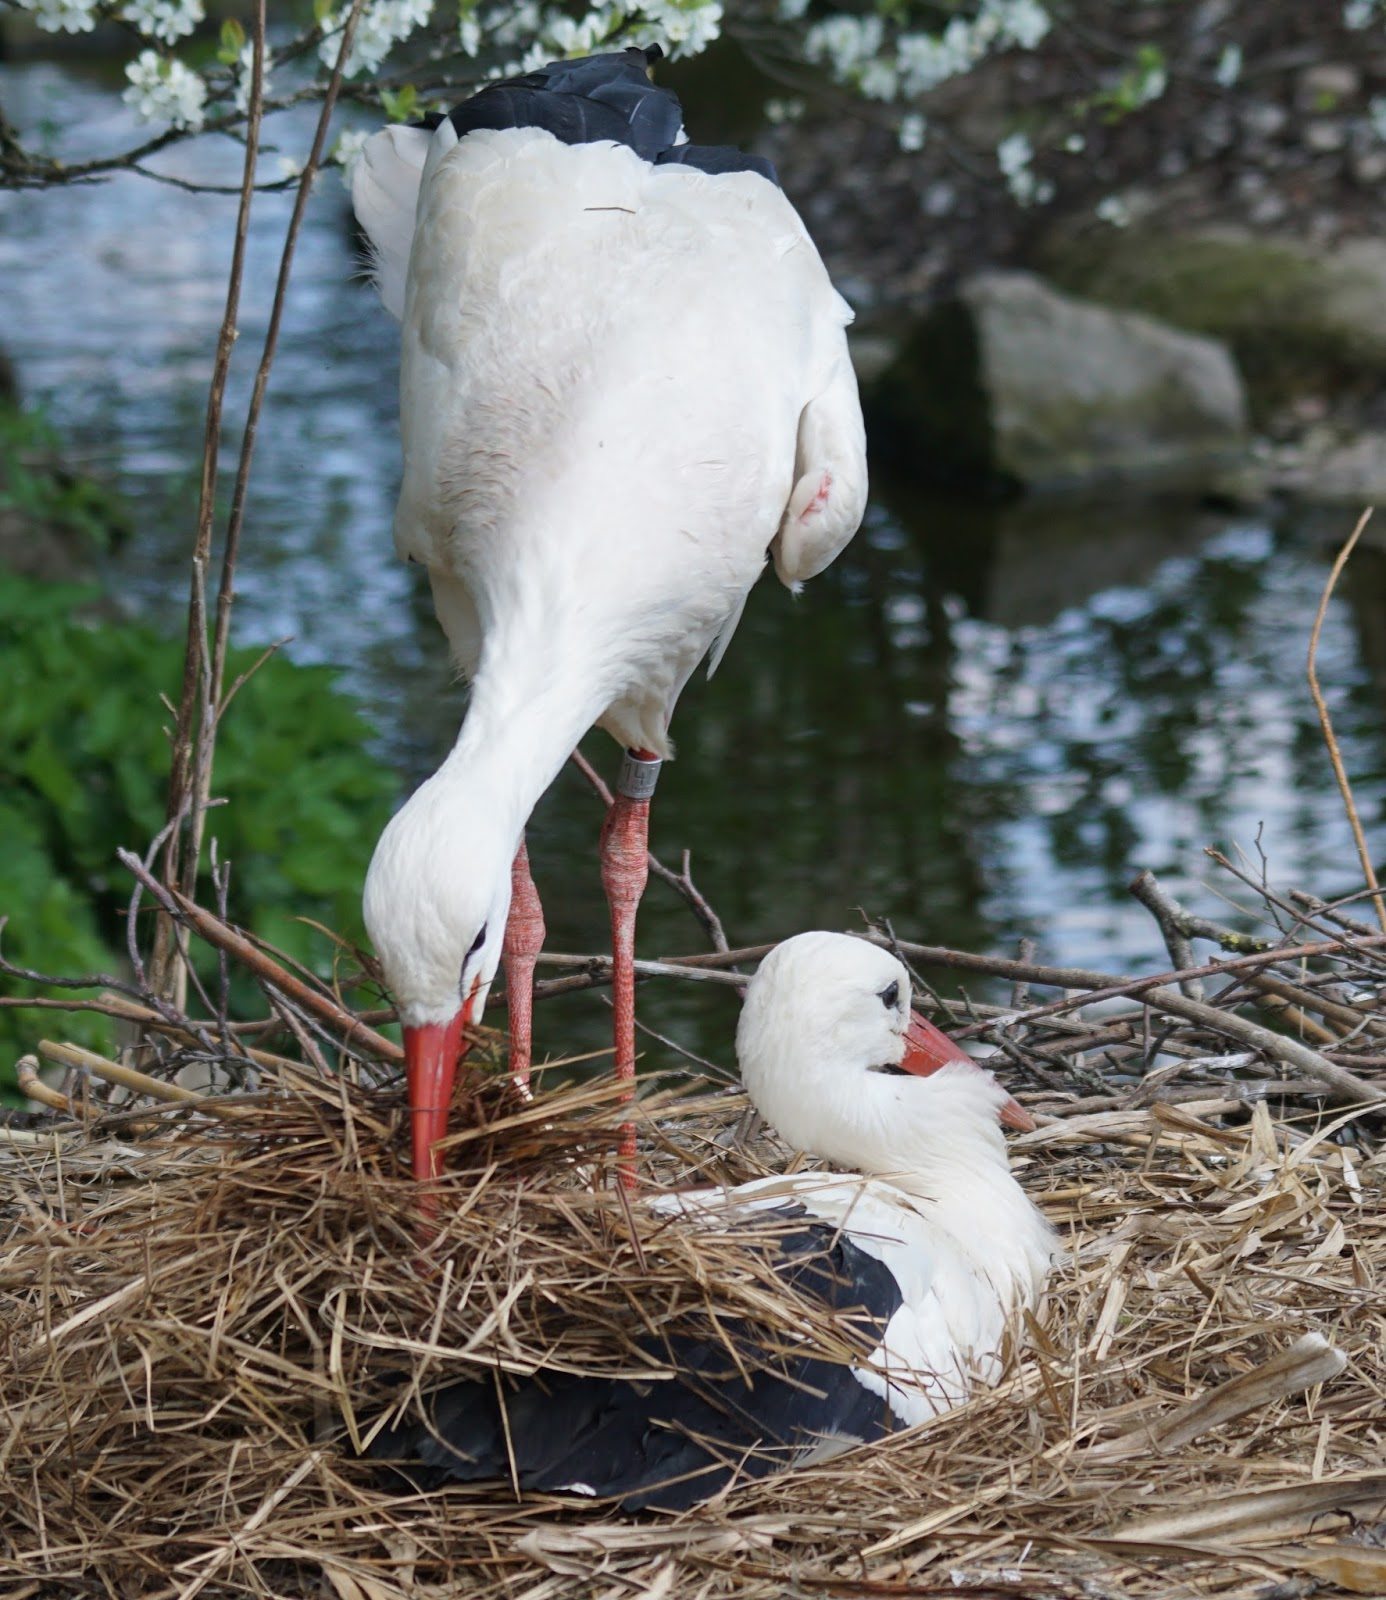 Picture of a stork bird building a nest.